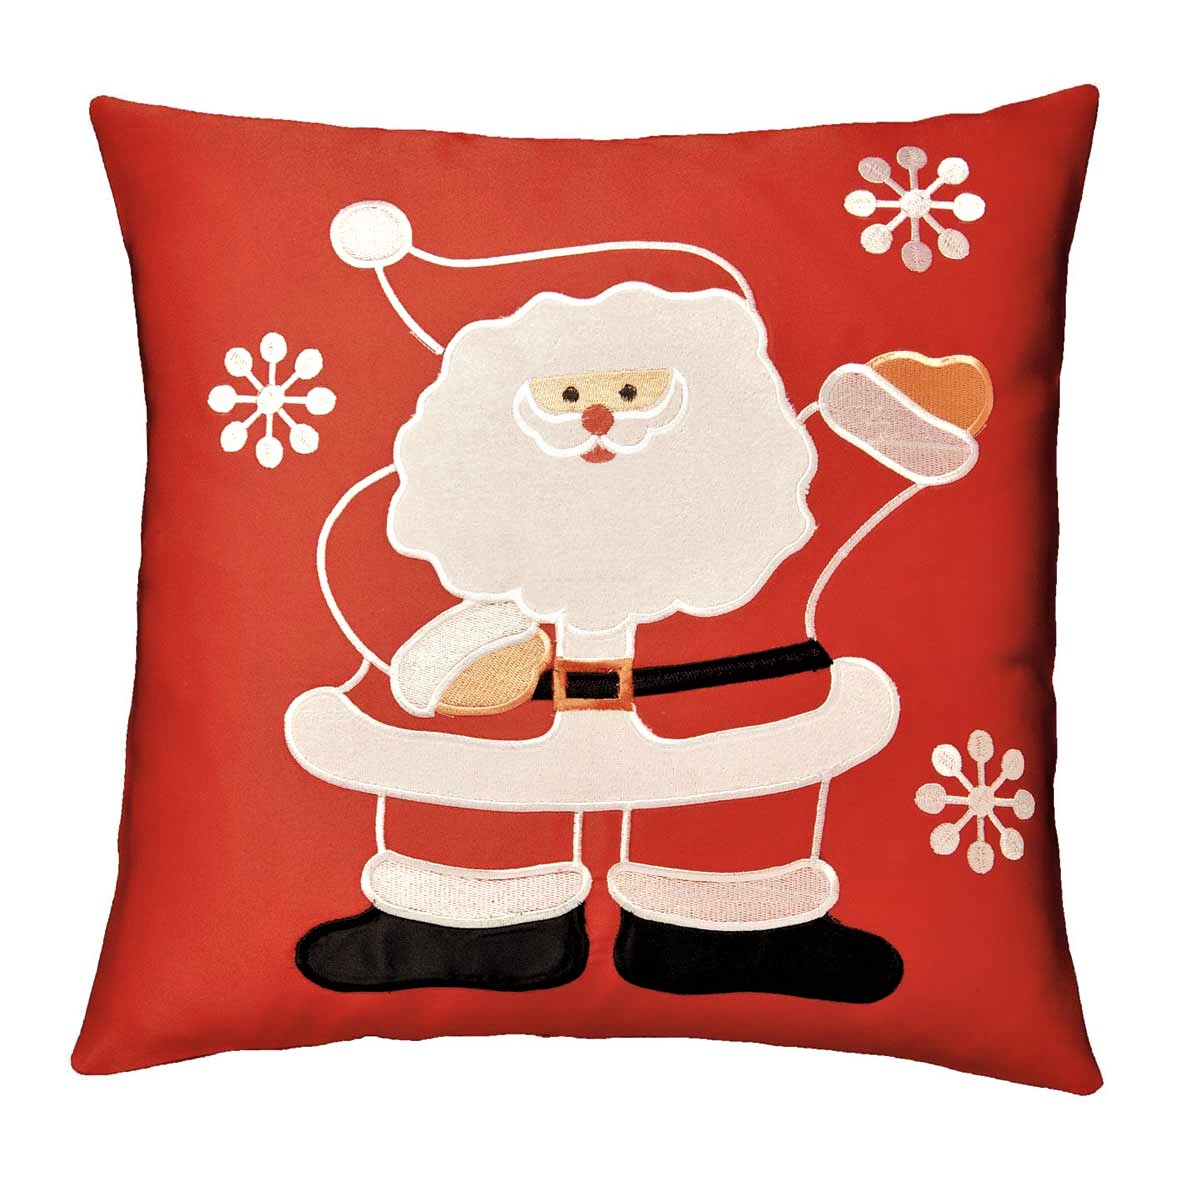 "Waving Santa cushion cover in a 16 x 16"" square"